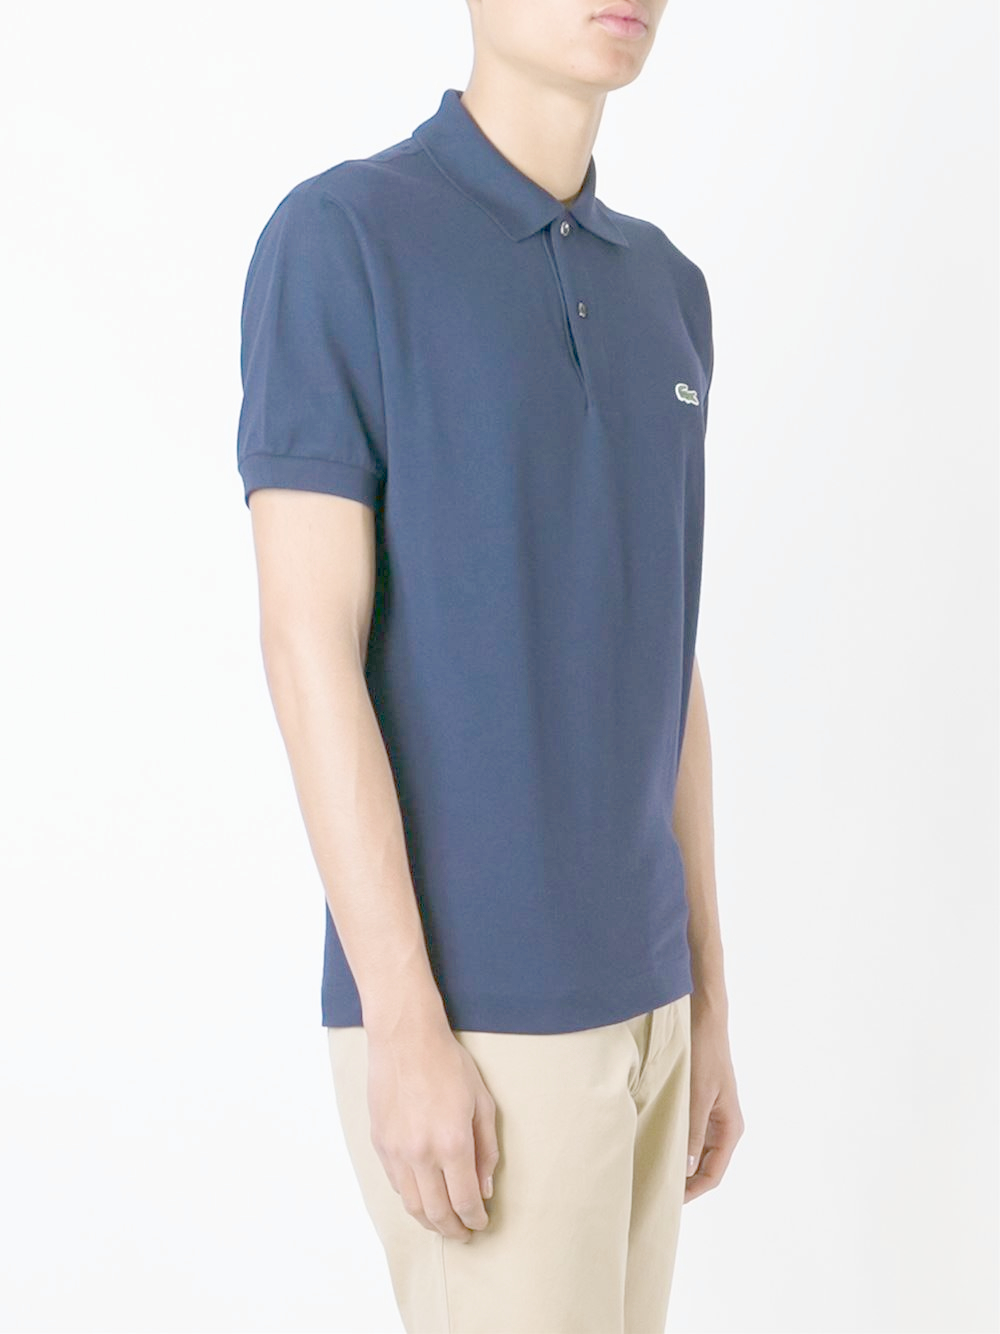 lacoste classic piqu polo shirt in blue for men lyst. Black Bedroom Furniture Sets. Home Design Ideas